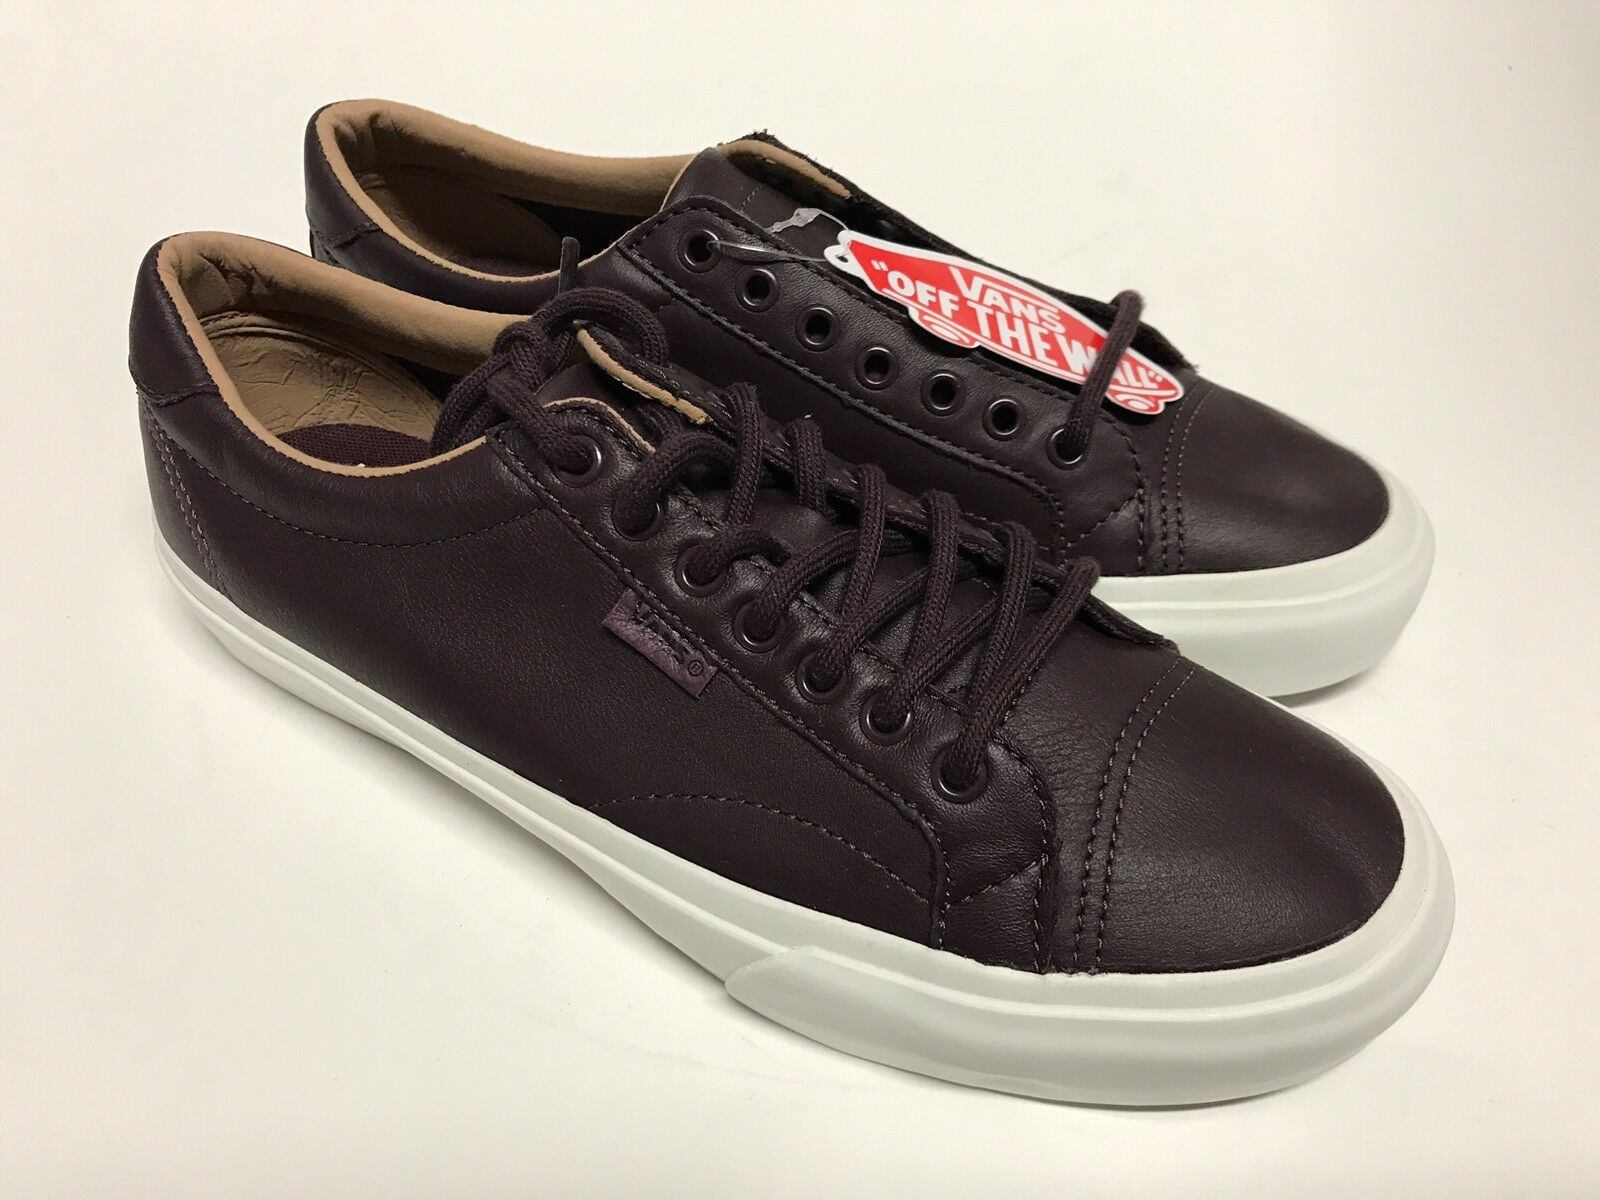 VANS Bedford (Brown Leather)